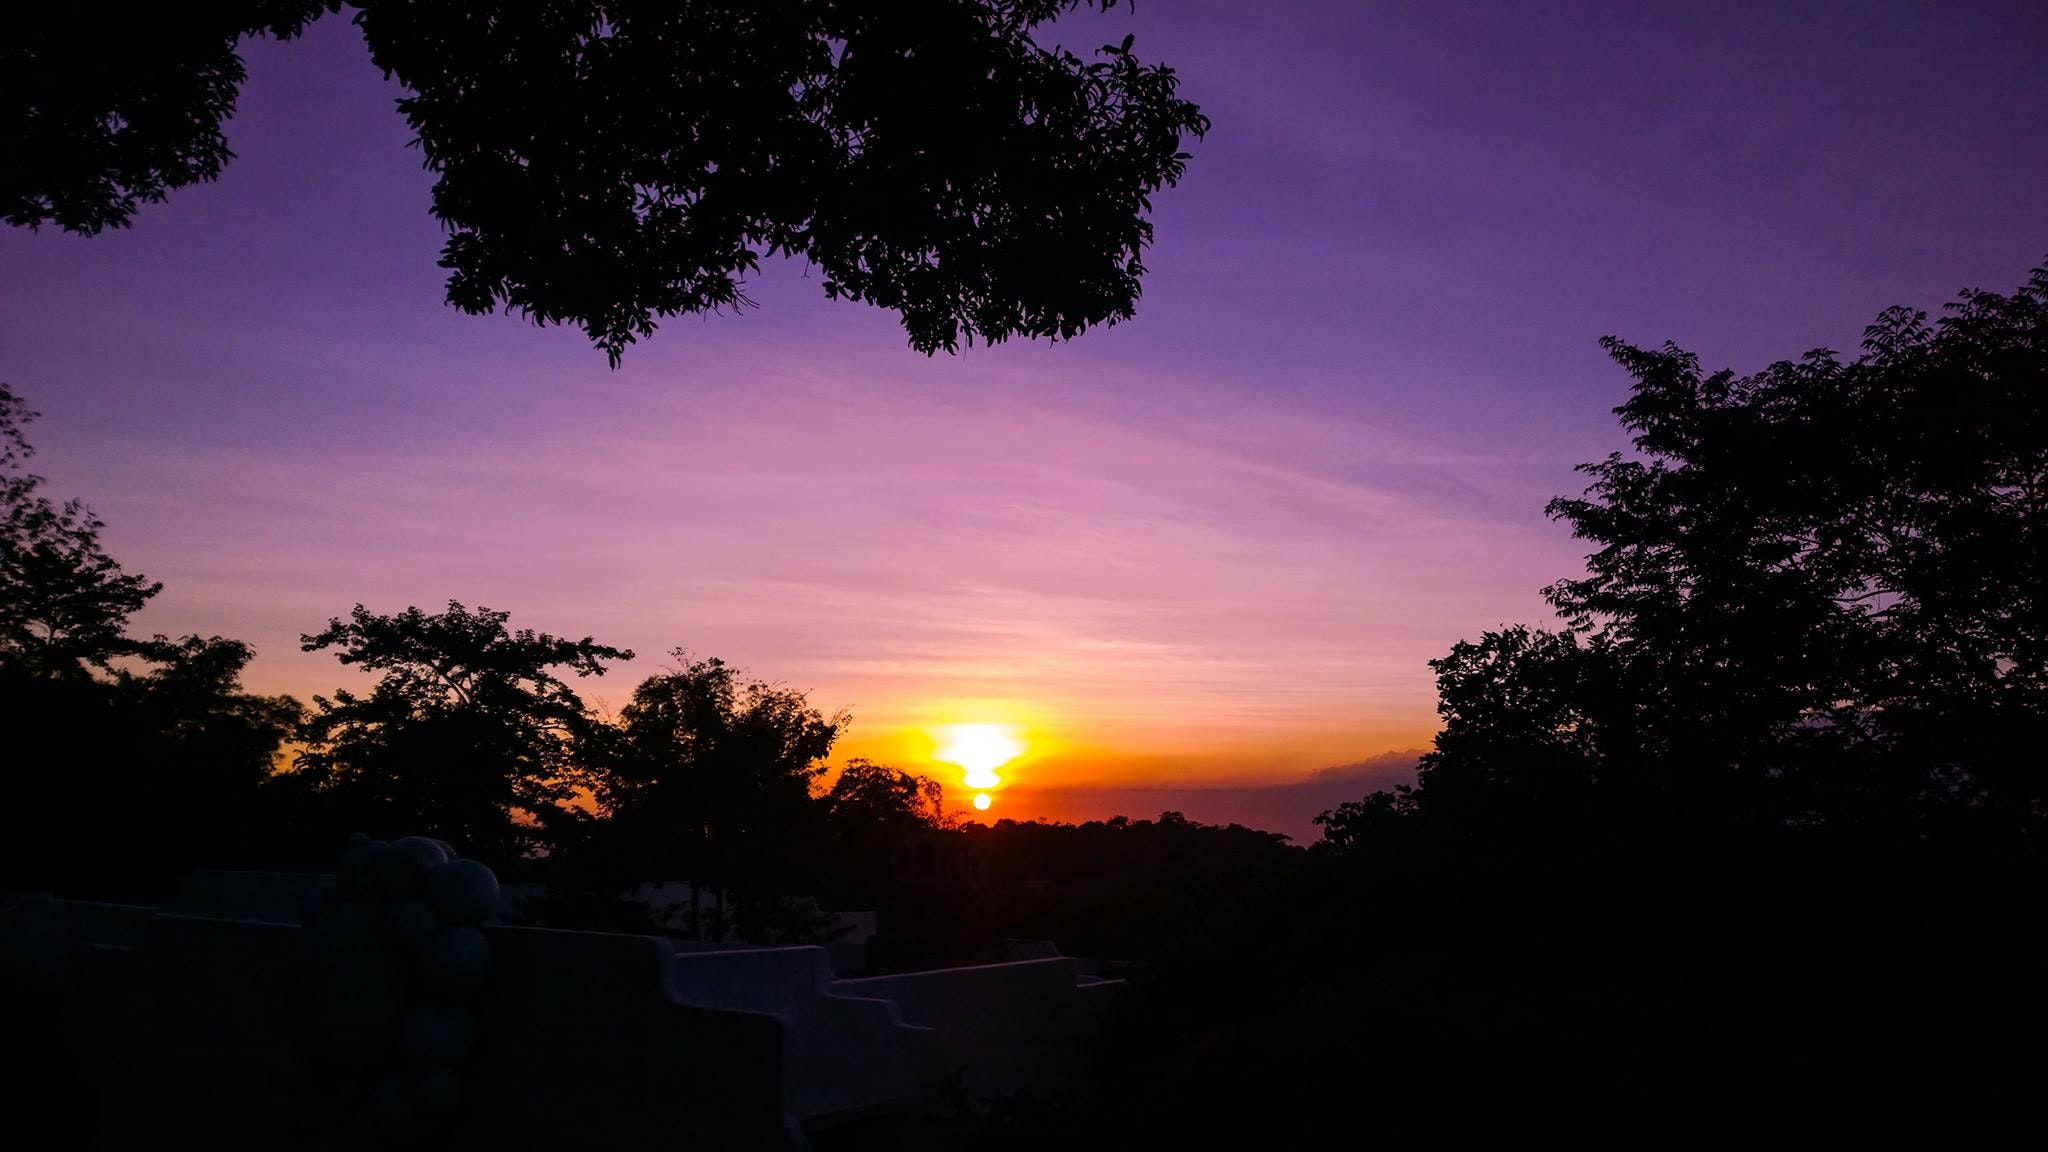 Sunset in Antipolo City - photo by Carmela Sarsora under Pexels License